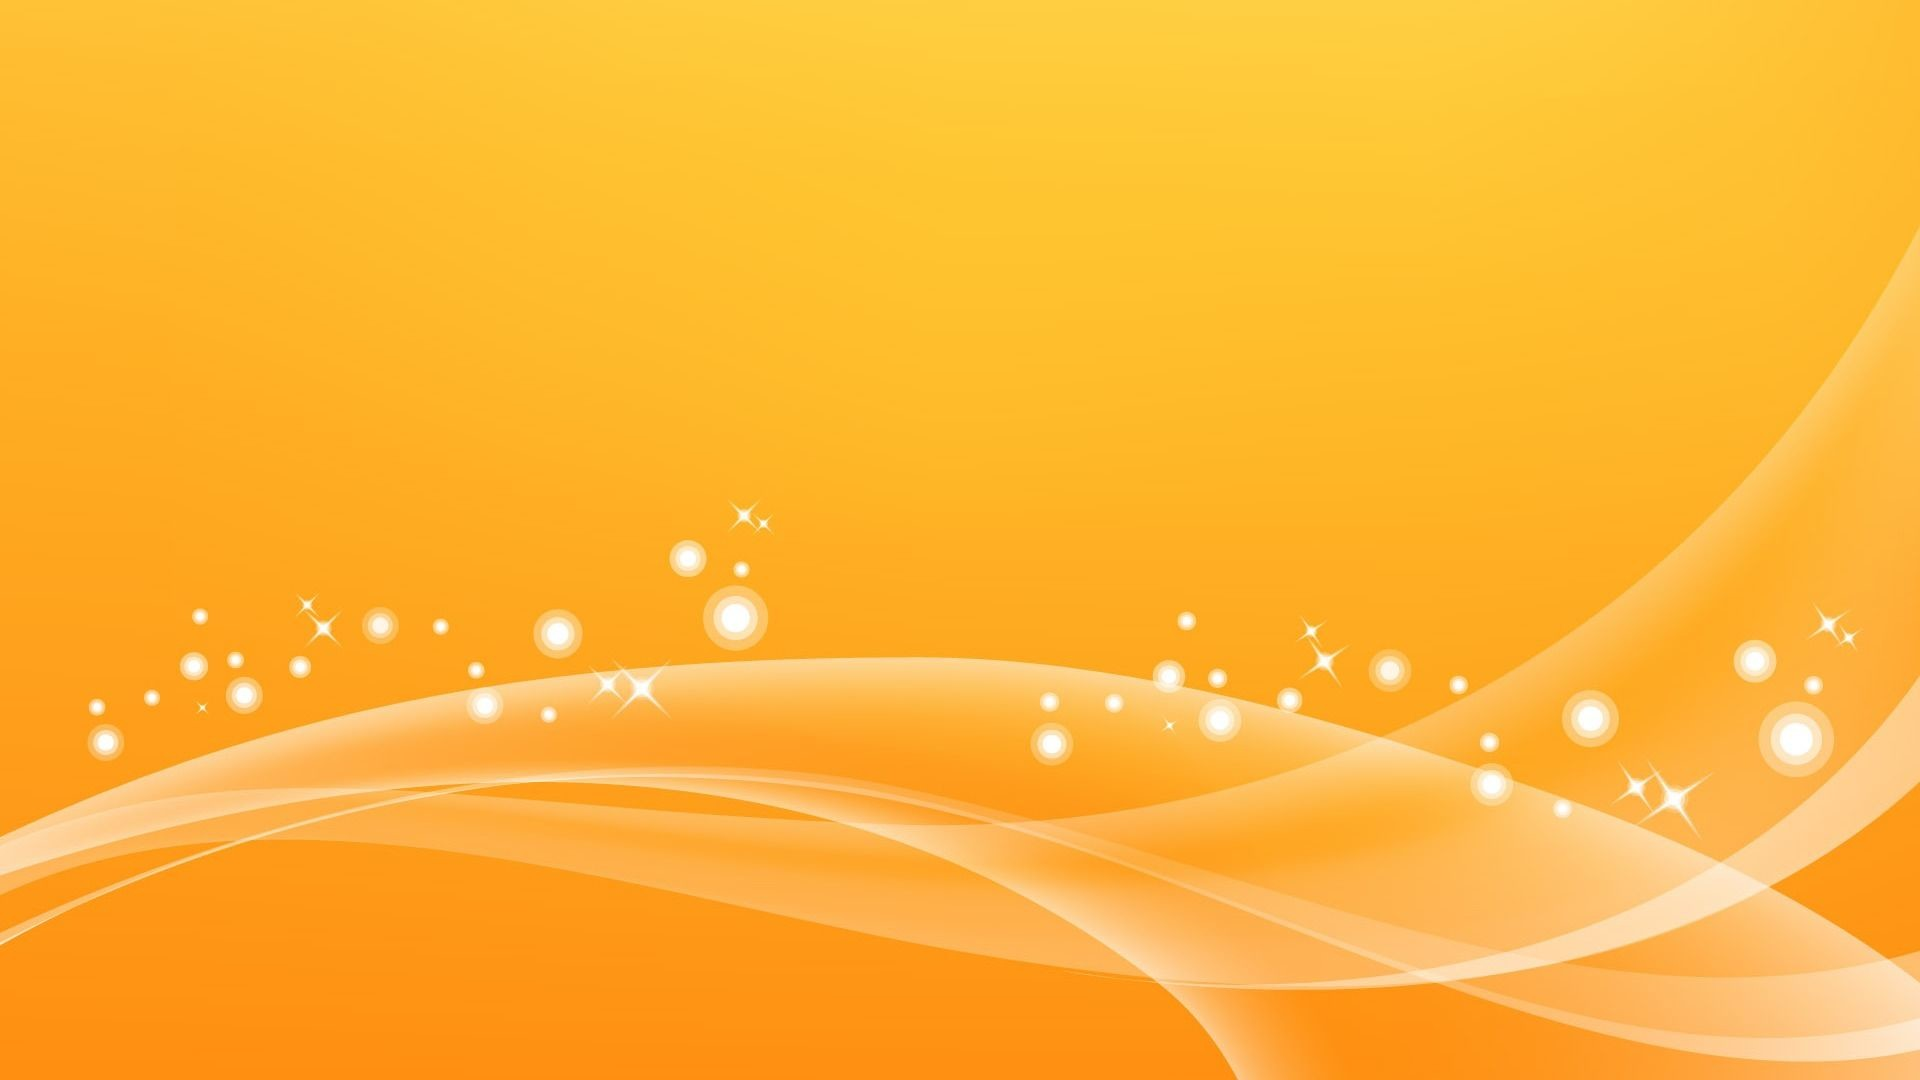 1920x1080 designing backgrounds hd 9 background images for powerpoint in